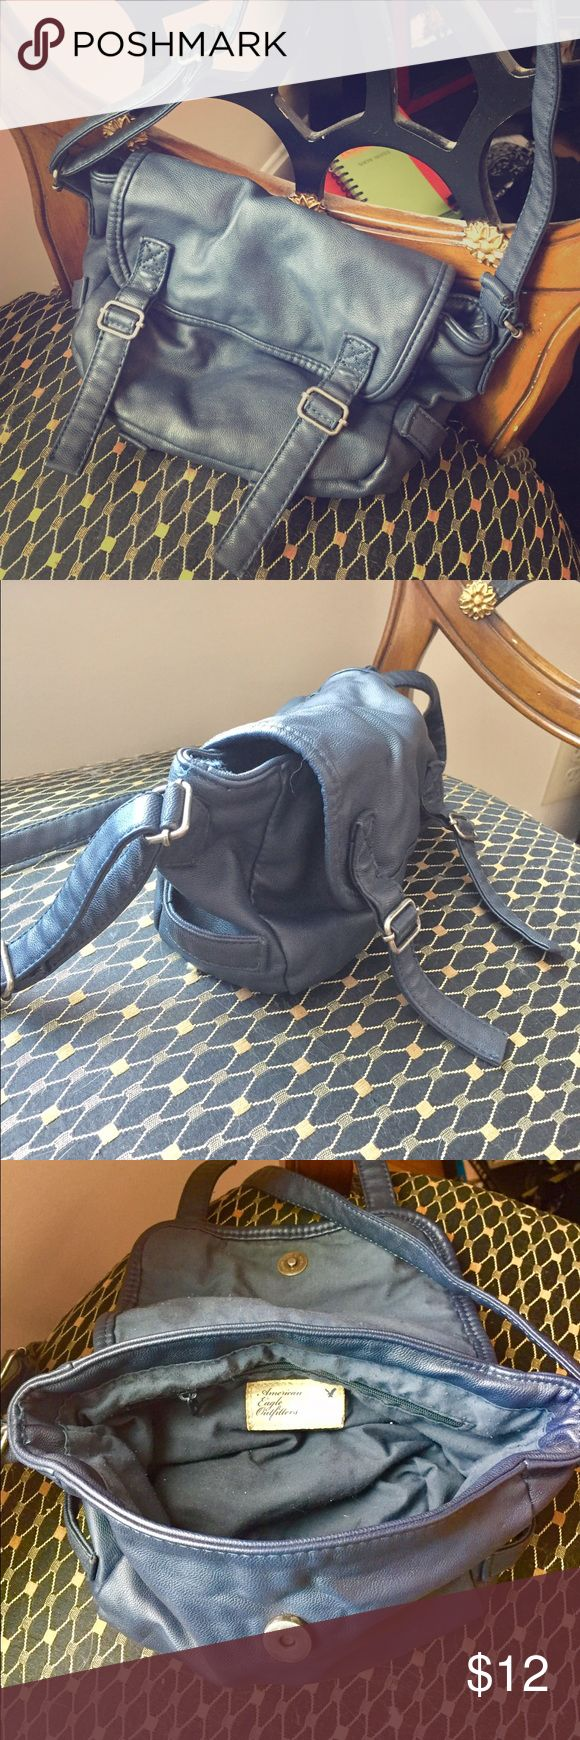 Crossbody leather American Eagle Outfitters bag Navy cross body American Eagle leather handbag. Perfect and casual for any occasion. Enough room for a small wallet, phone, and any other accessories you may need to bring! Used, good condition. American Eagle Outfitters Bags Crossbody Bags